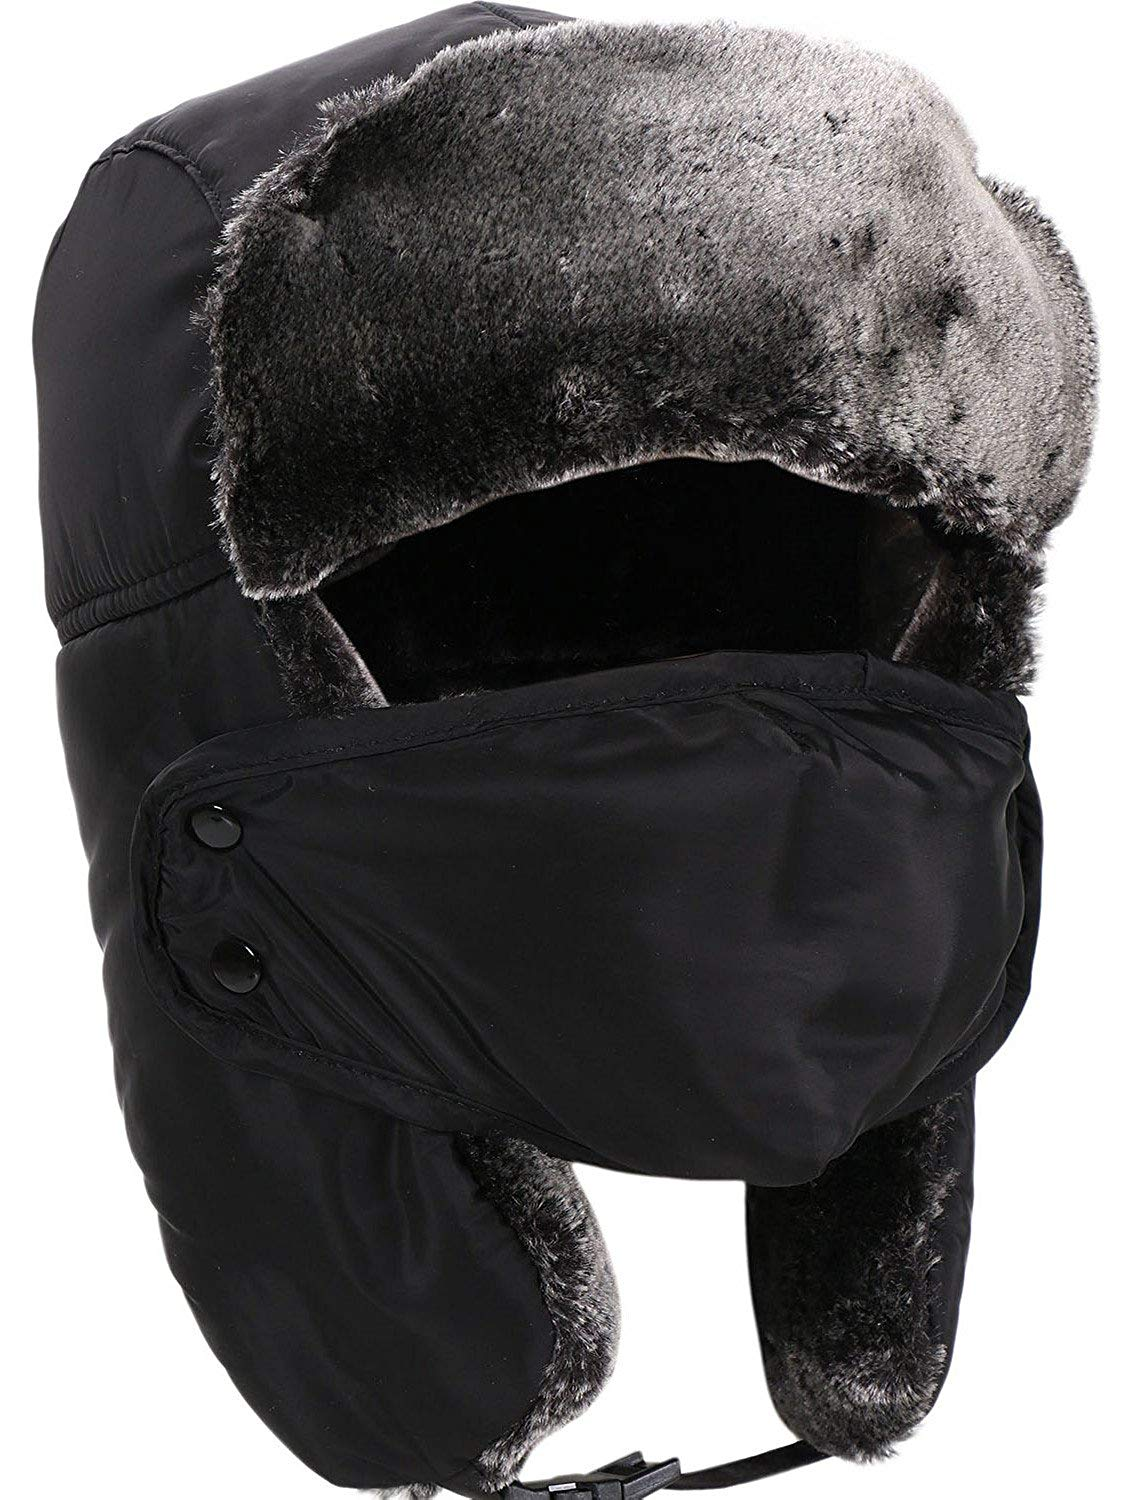 20301d63b83 Get Quotations · Livingston Winter Outdoors Faux Fur Waterproof Trooper Hat  w Mask